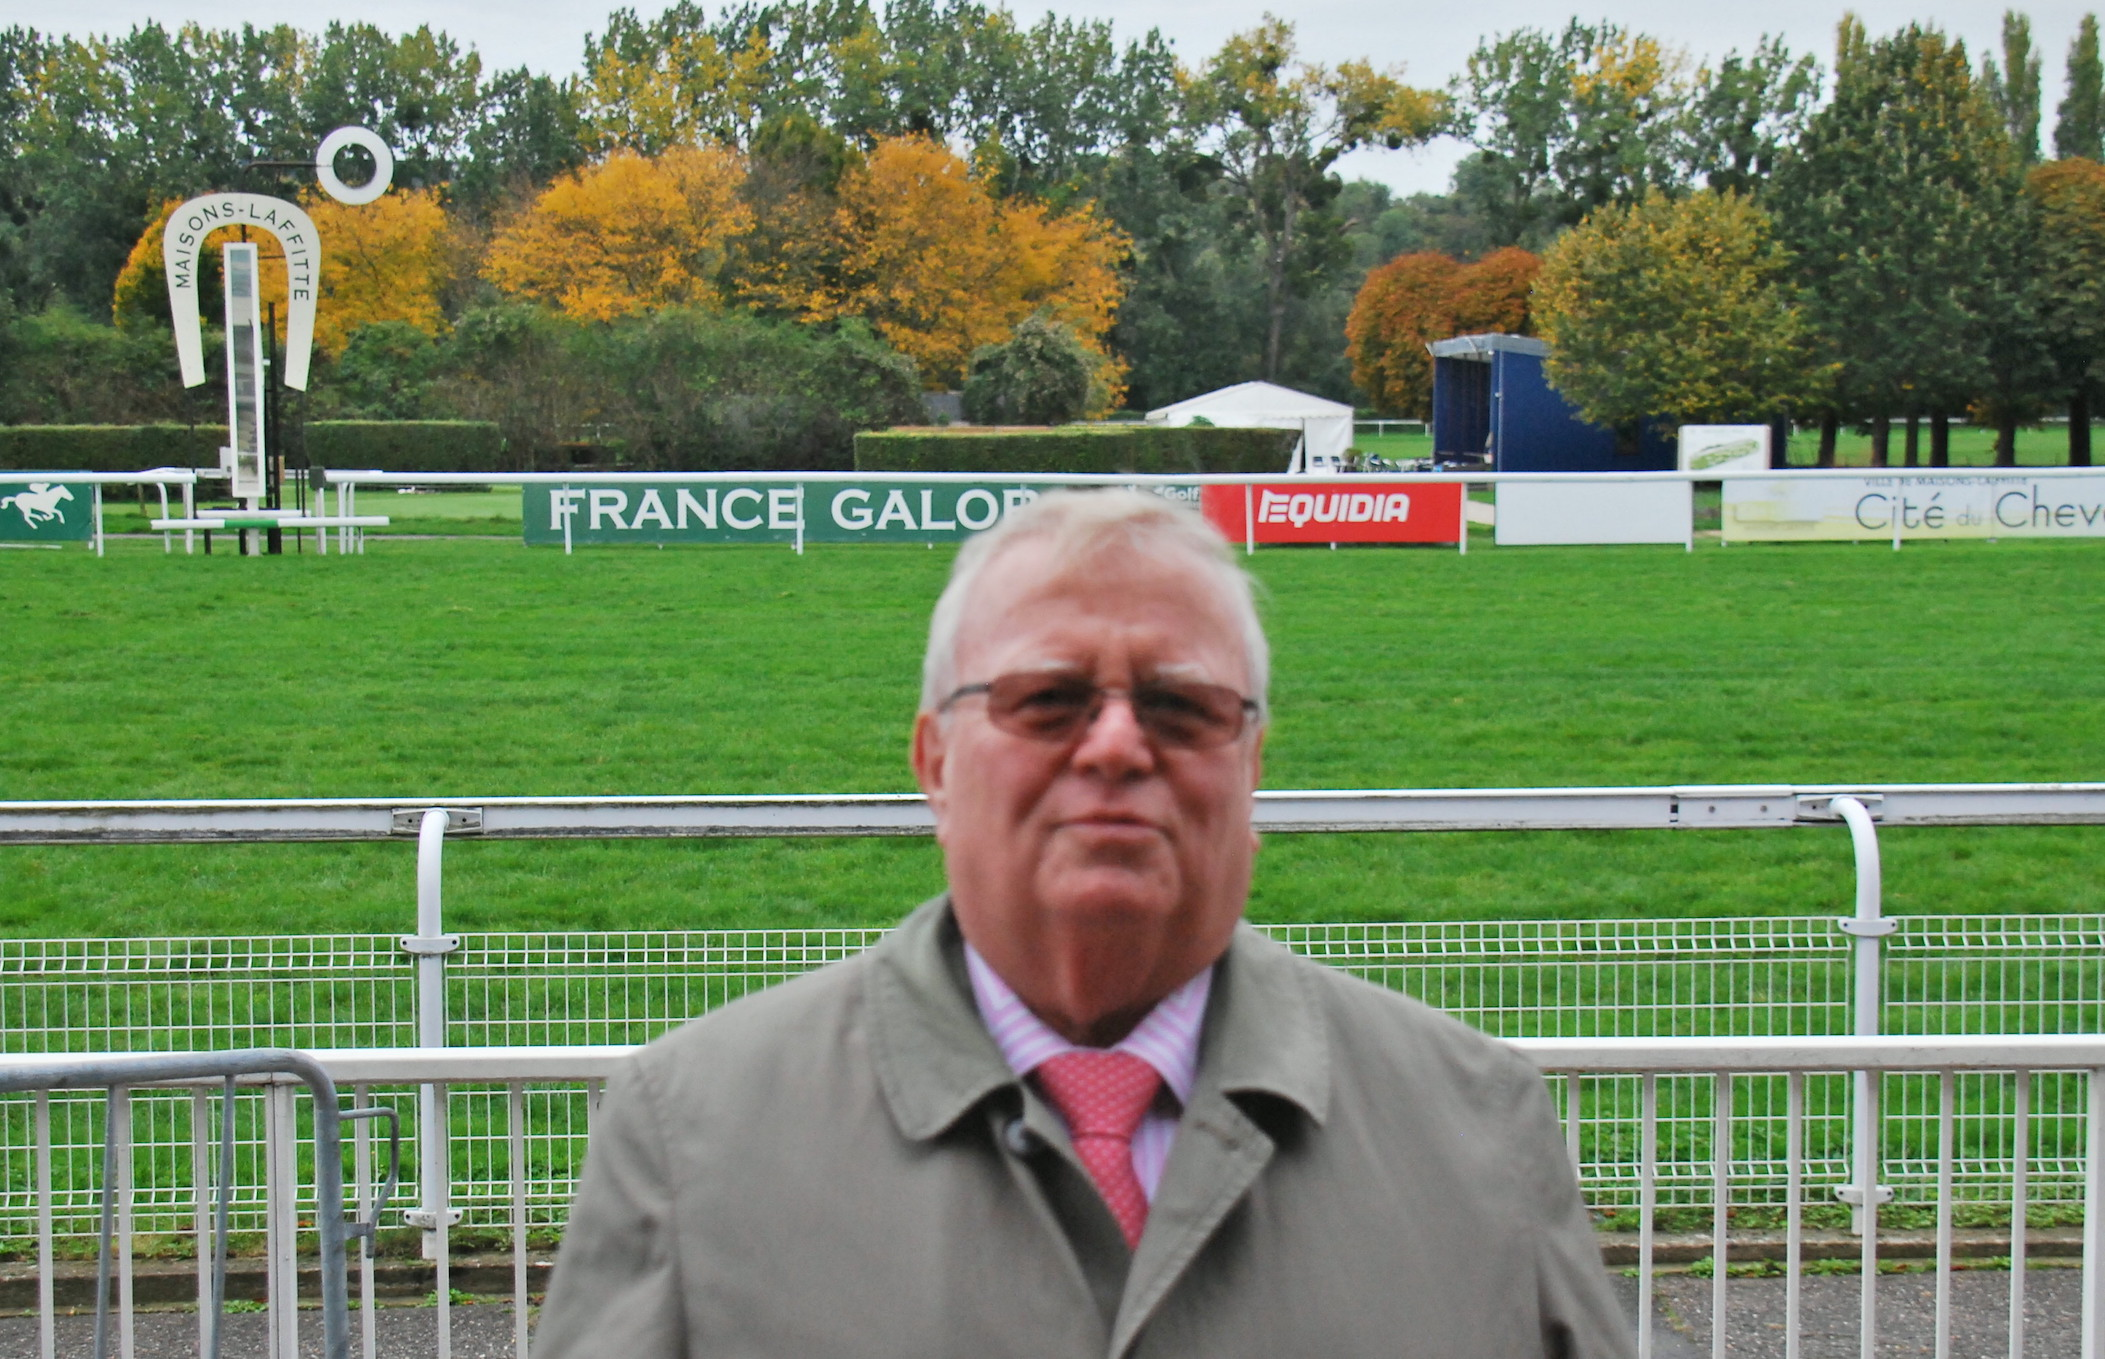 Mayor Jacques Myard has been battling the proposed closure of Maisons-Laffitte for many years. Photo: John Gilmore